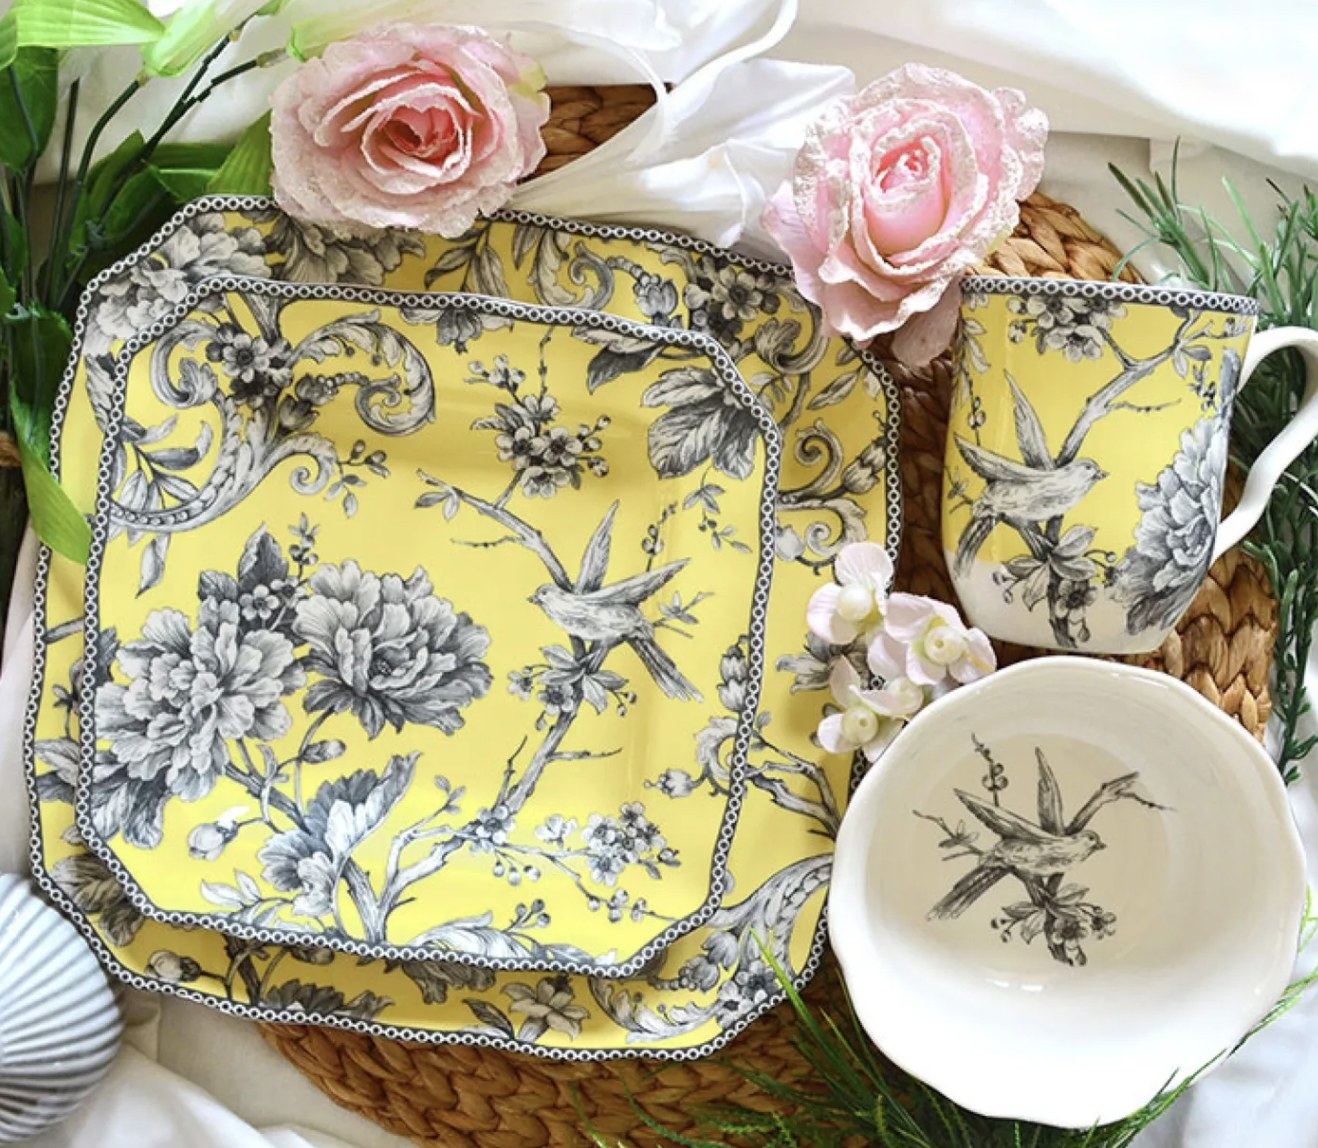 a yellow dish set with grey birds and flowers